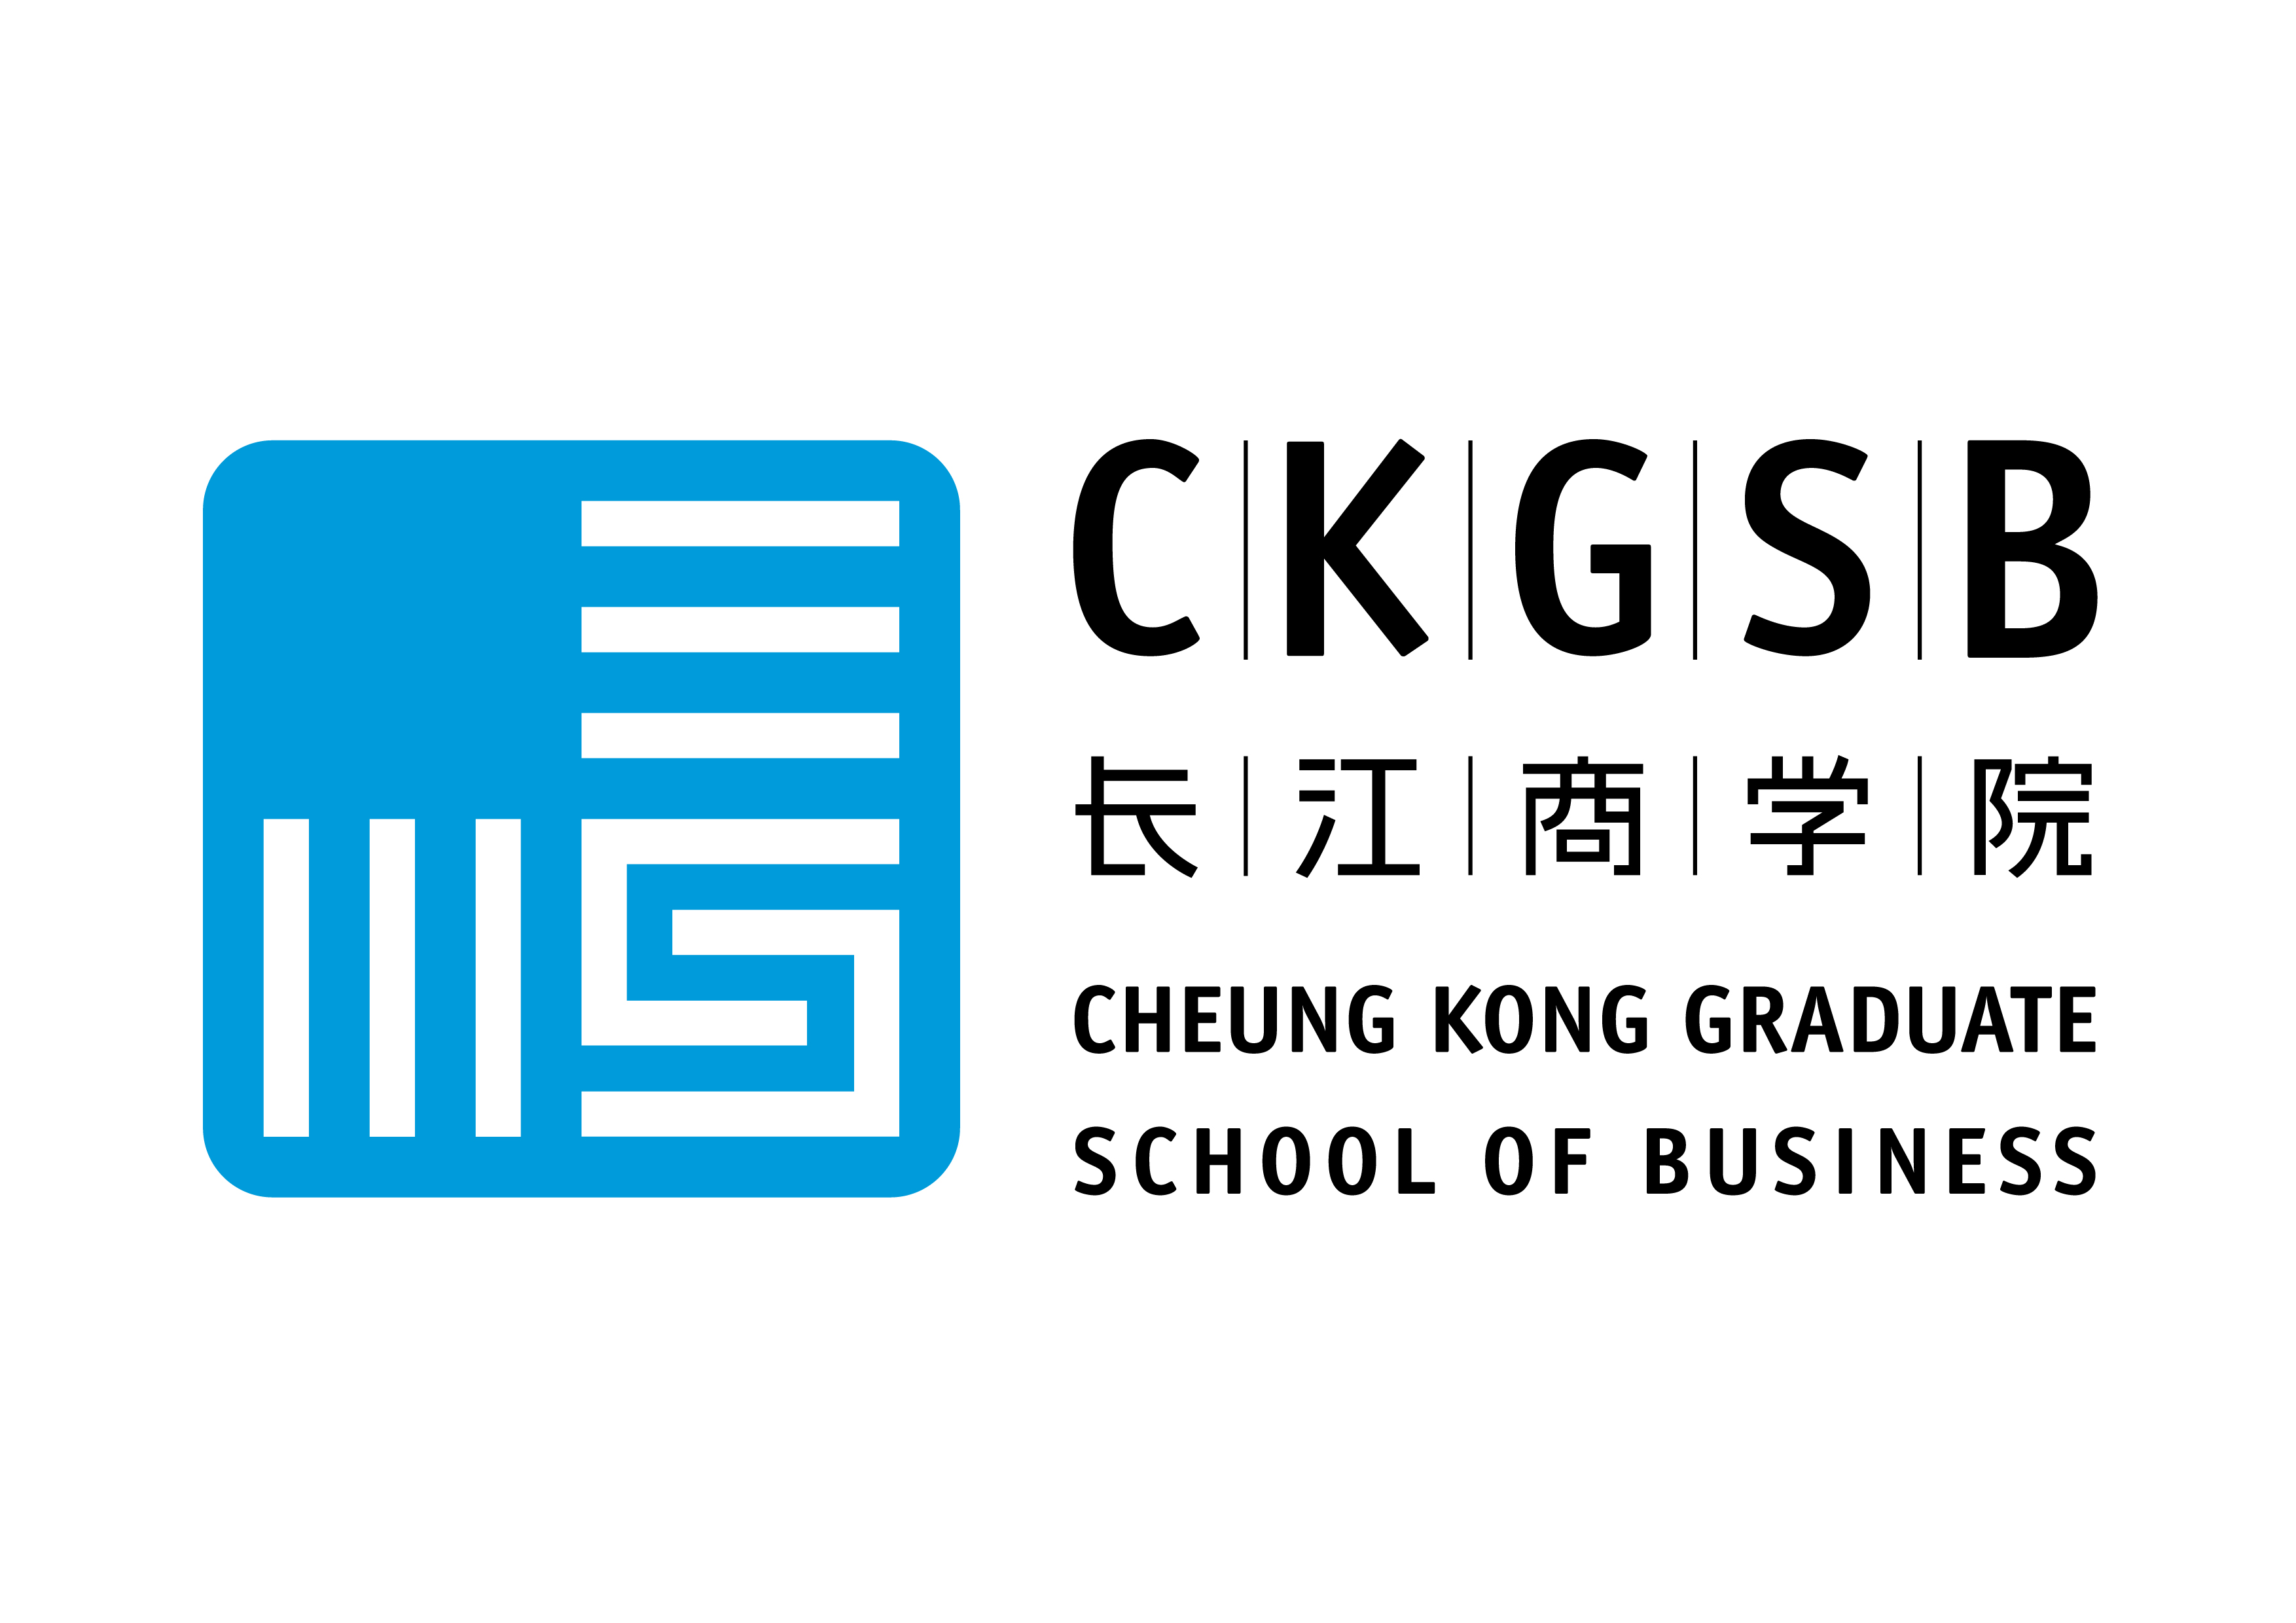 Cheung Kong Graduate School of Business (CKGSB)